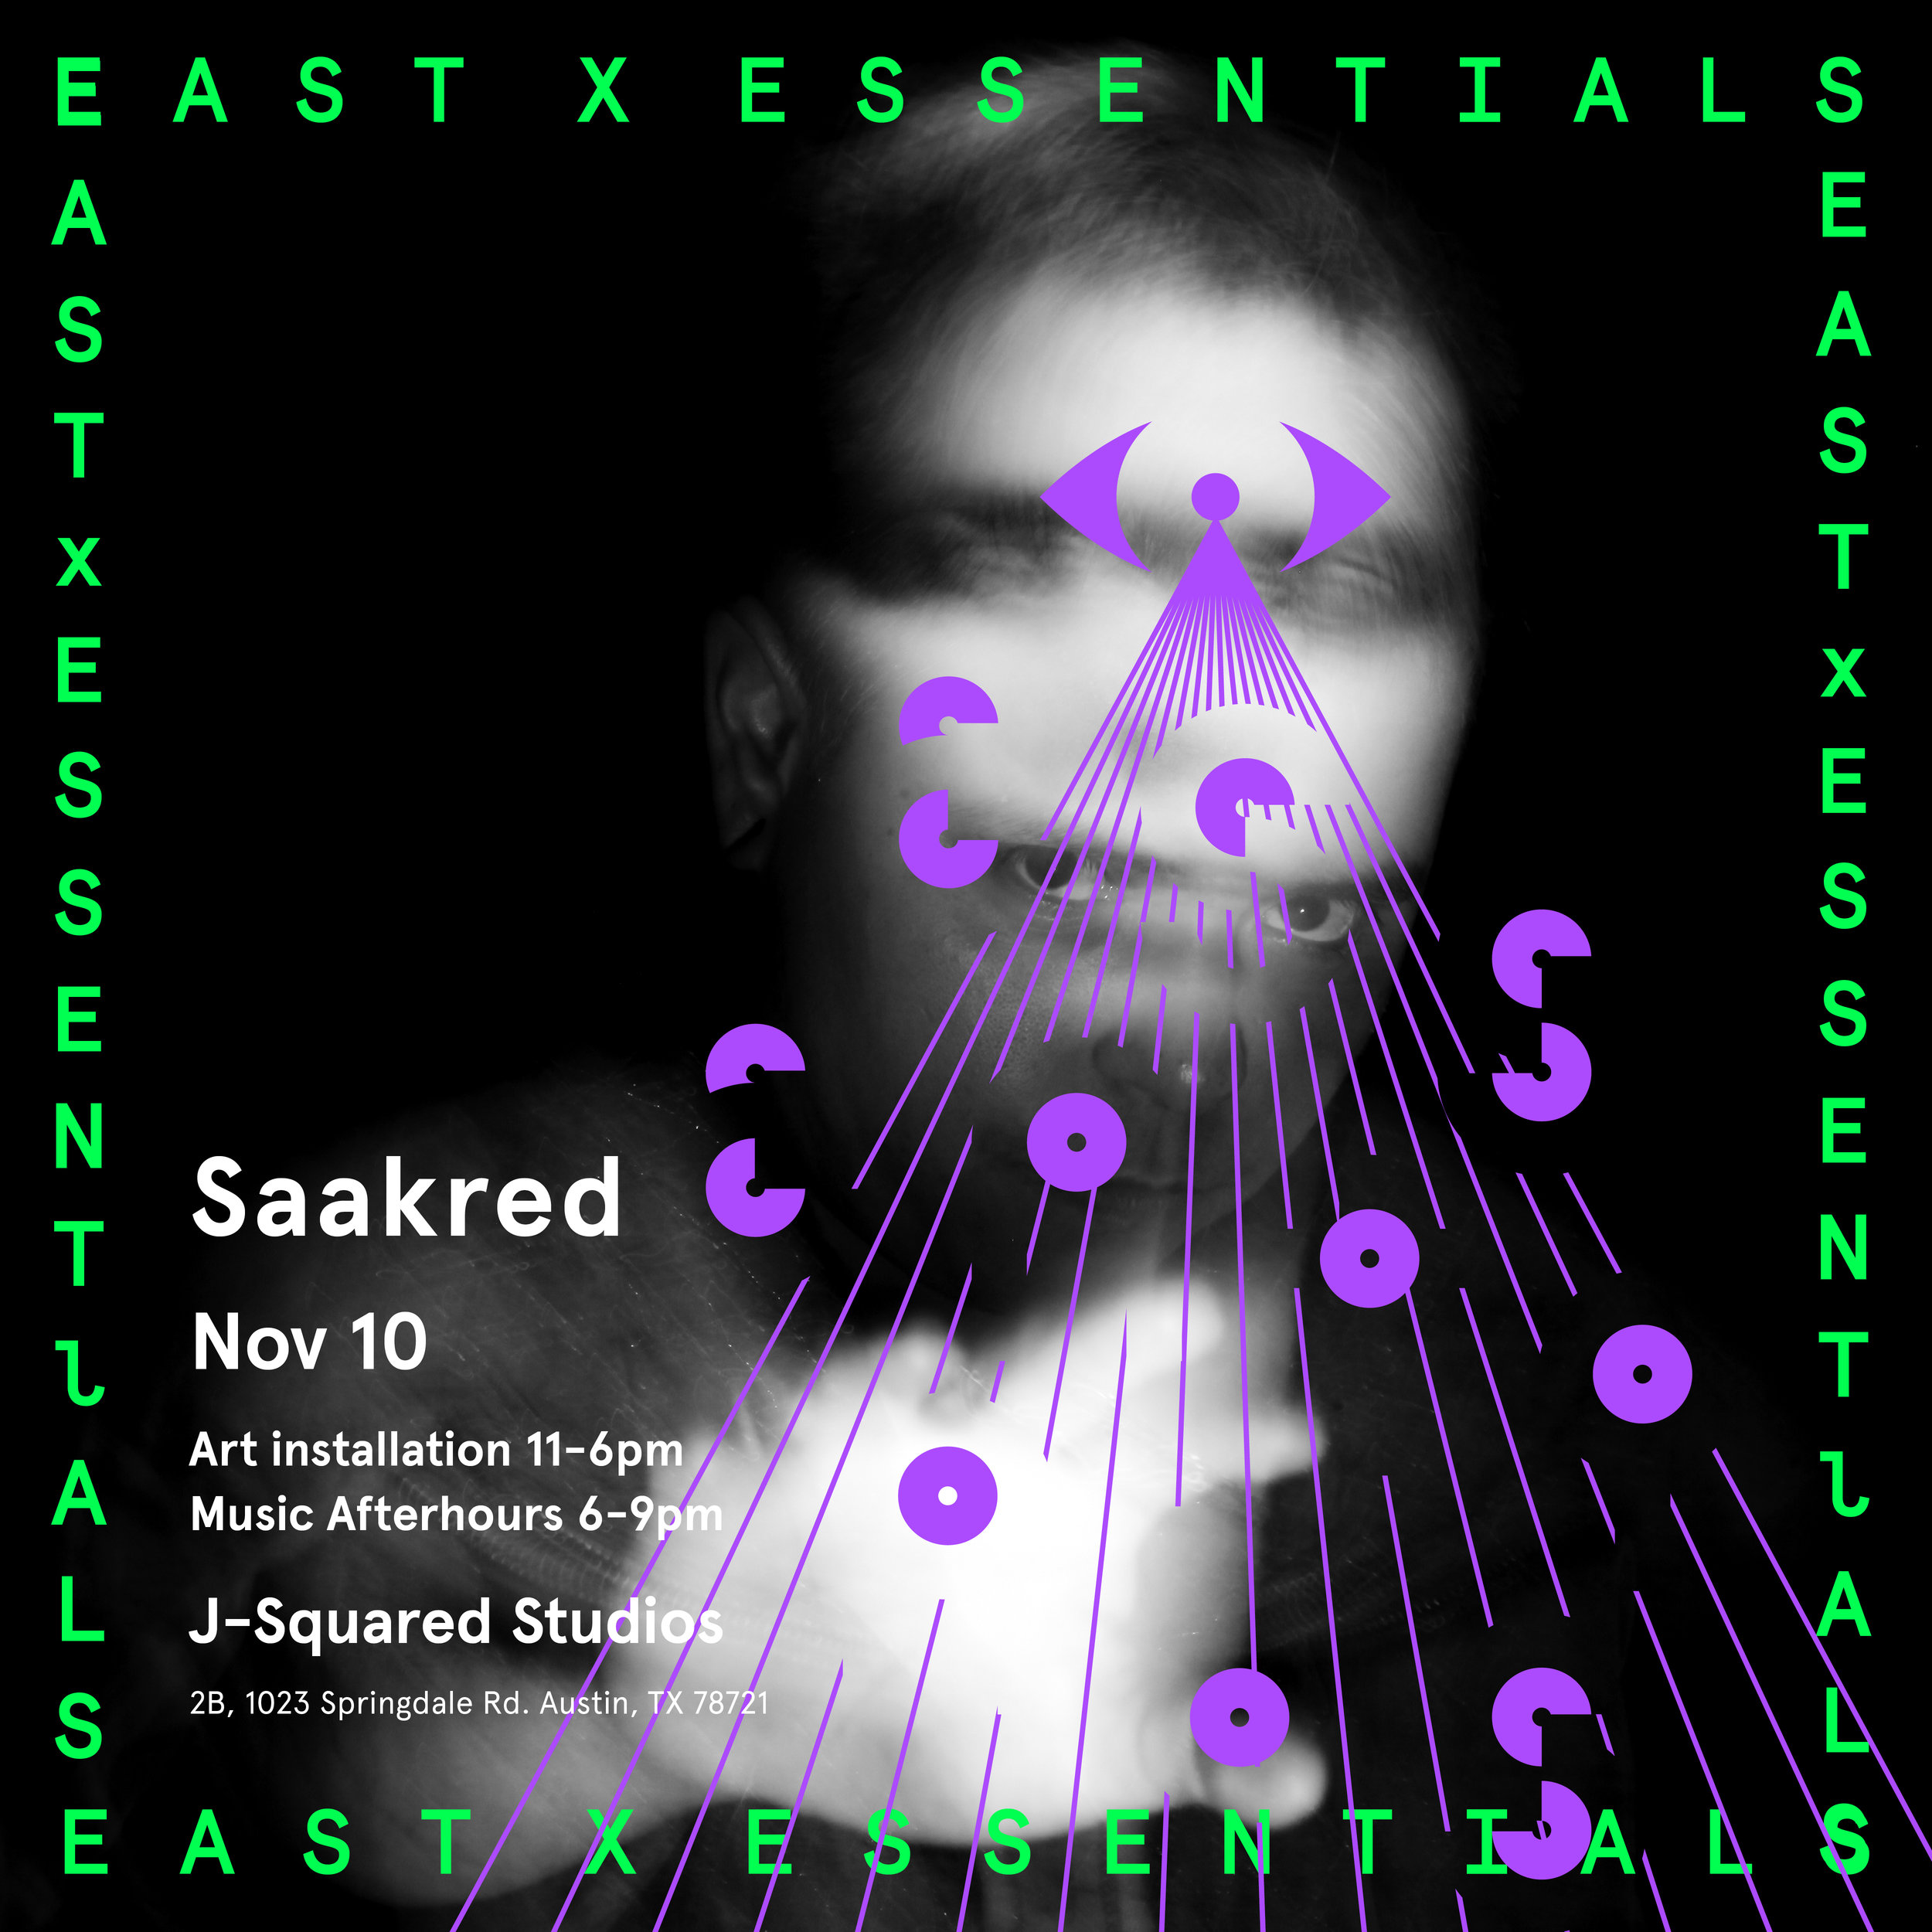 Saakred, Alternate flyer for EAST X ESSENTIALS CREATIVE